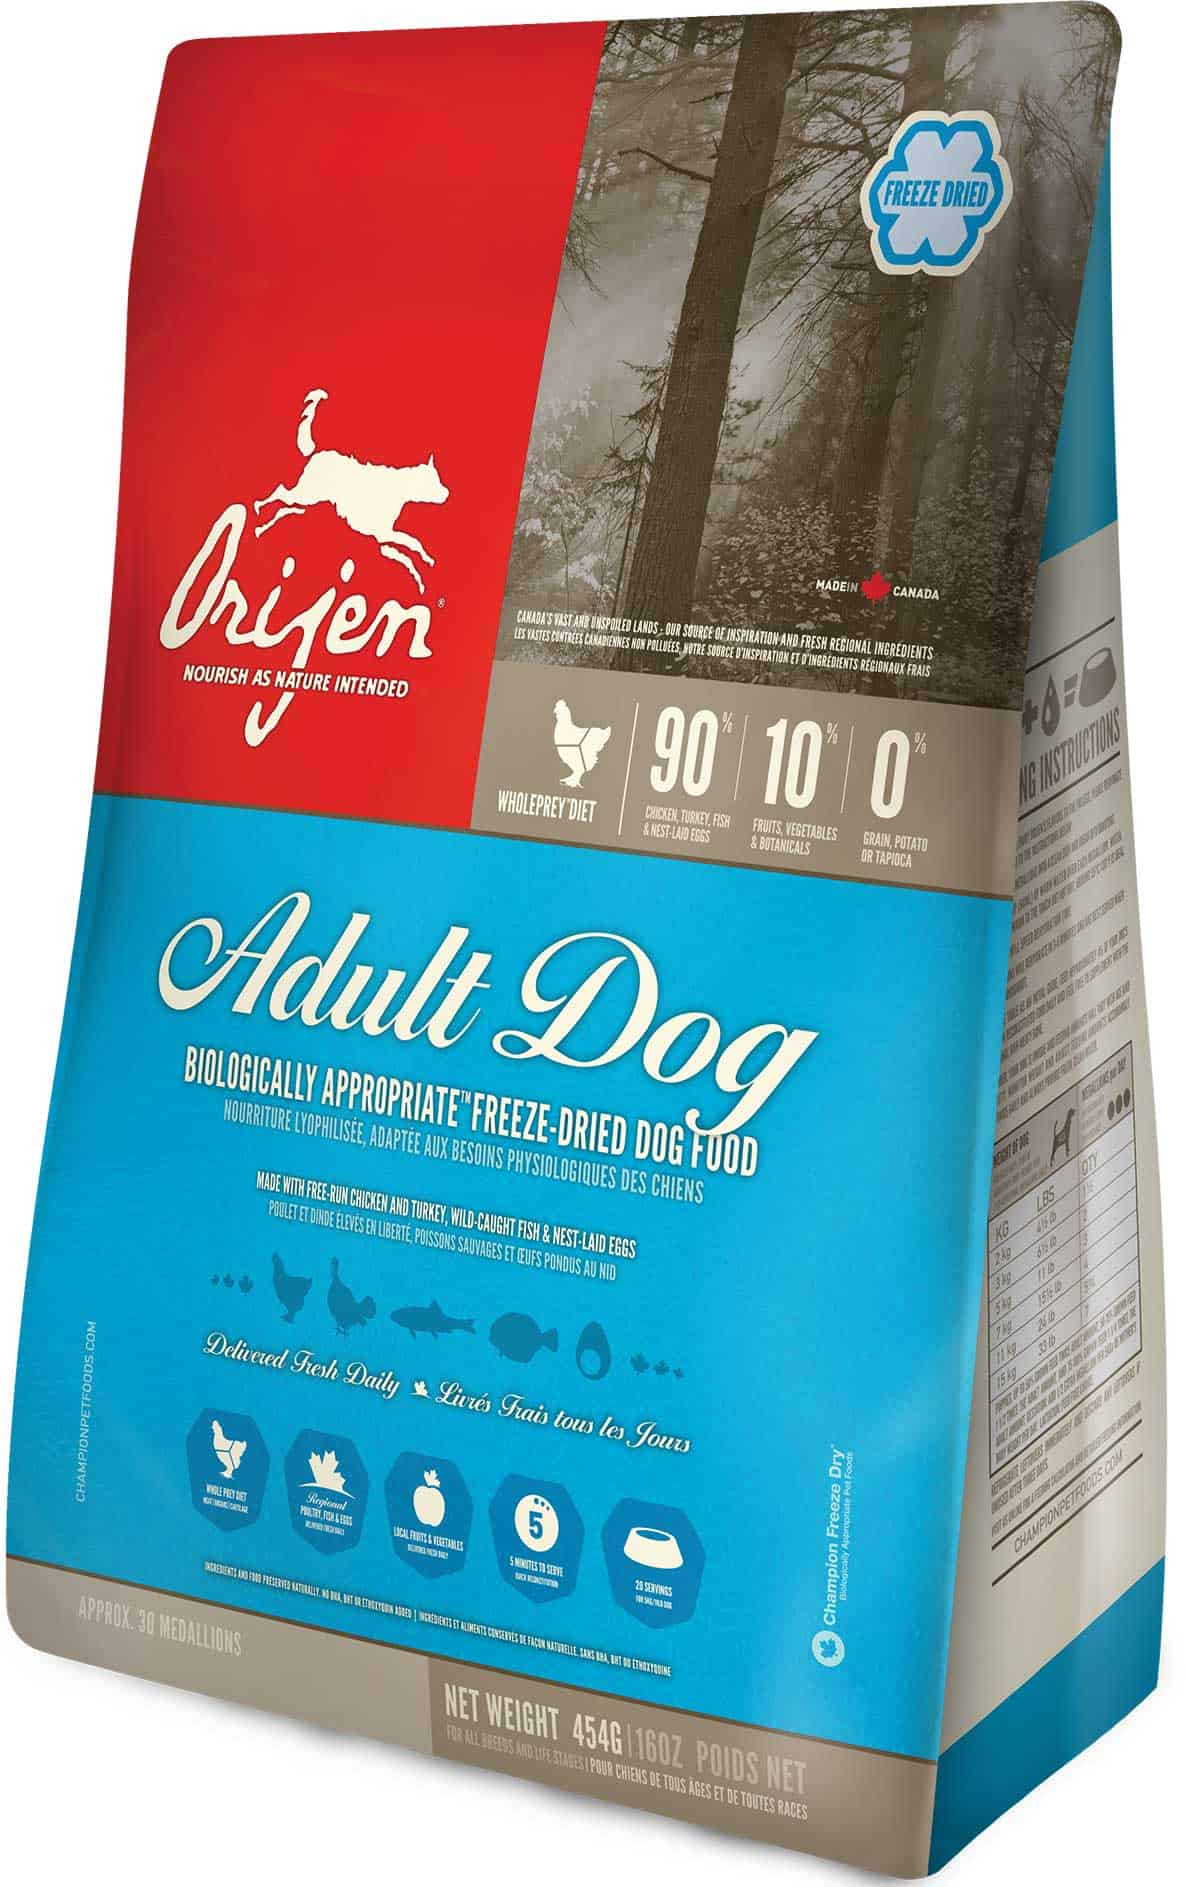 Orijen Adult Dog Food Review